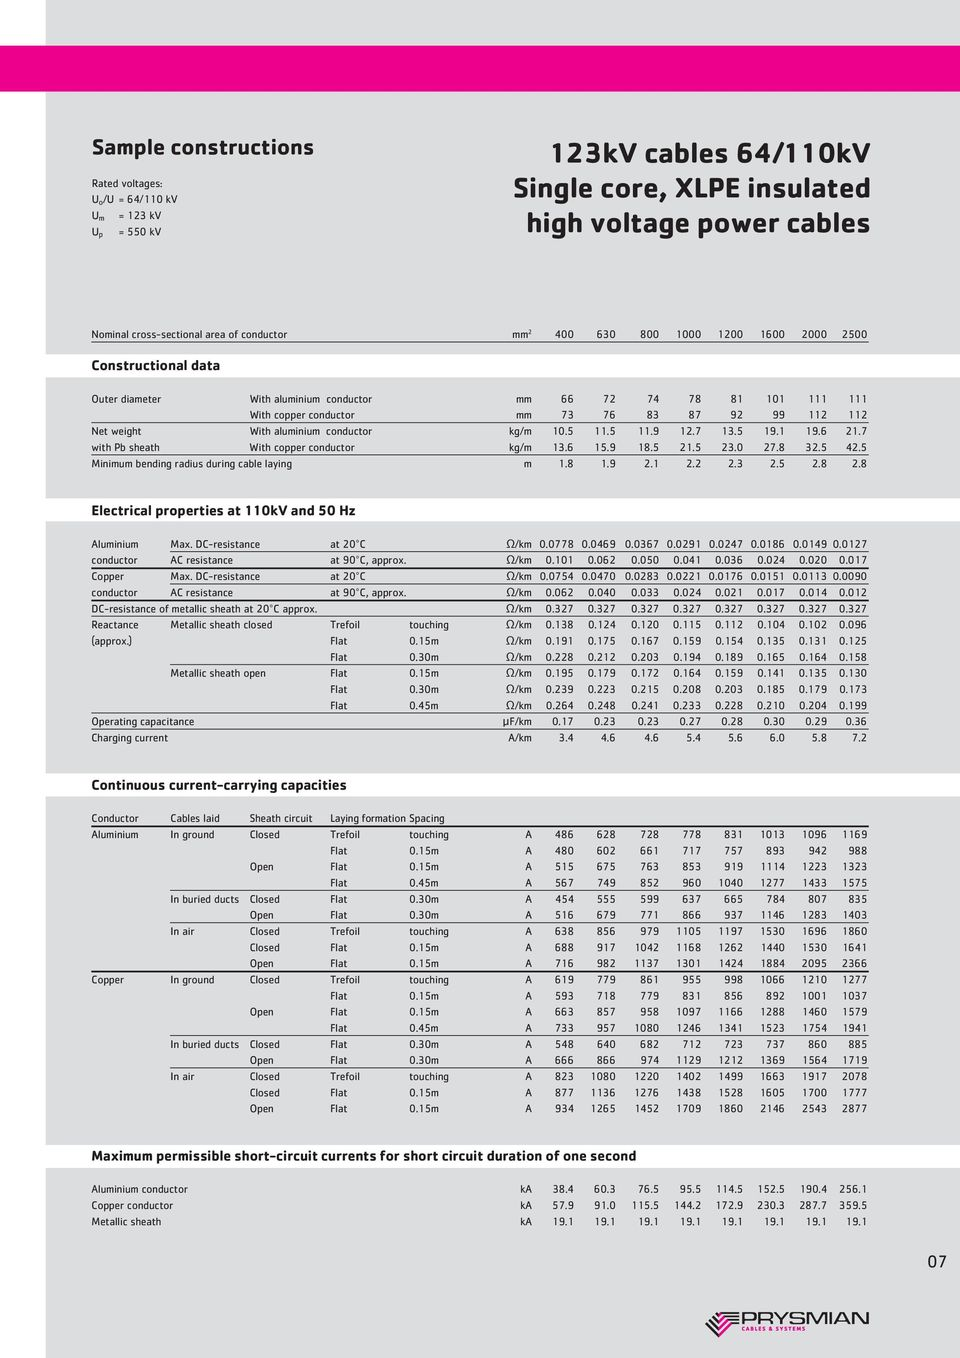 High Voltage Systems Today The History Of Cables Pdf Copper Electrical Wire Conductor Bv Electric Aluminium Kg M 105 115 119 127 135 191 196 217 With Pb Sheath